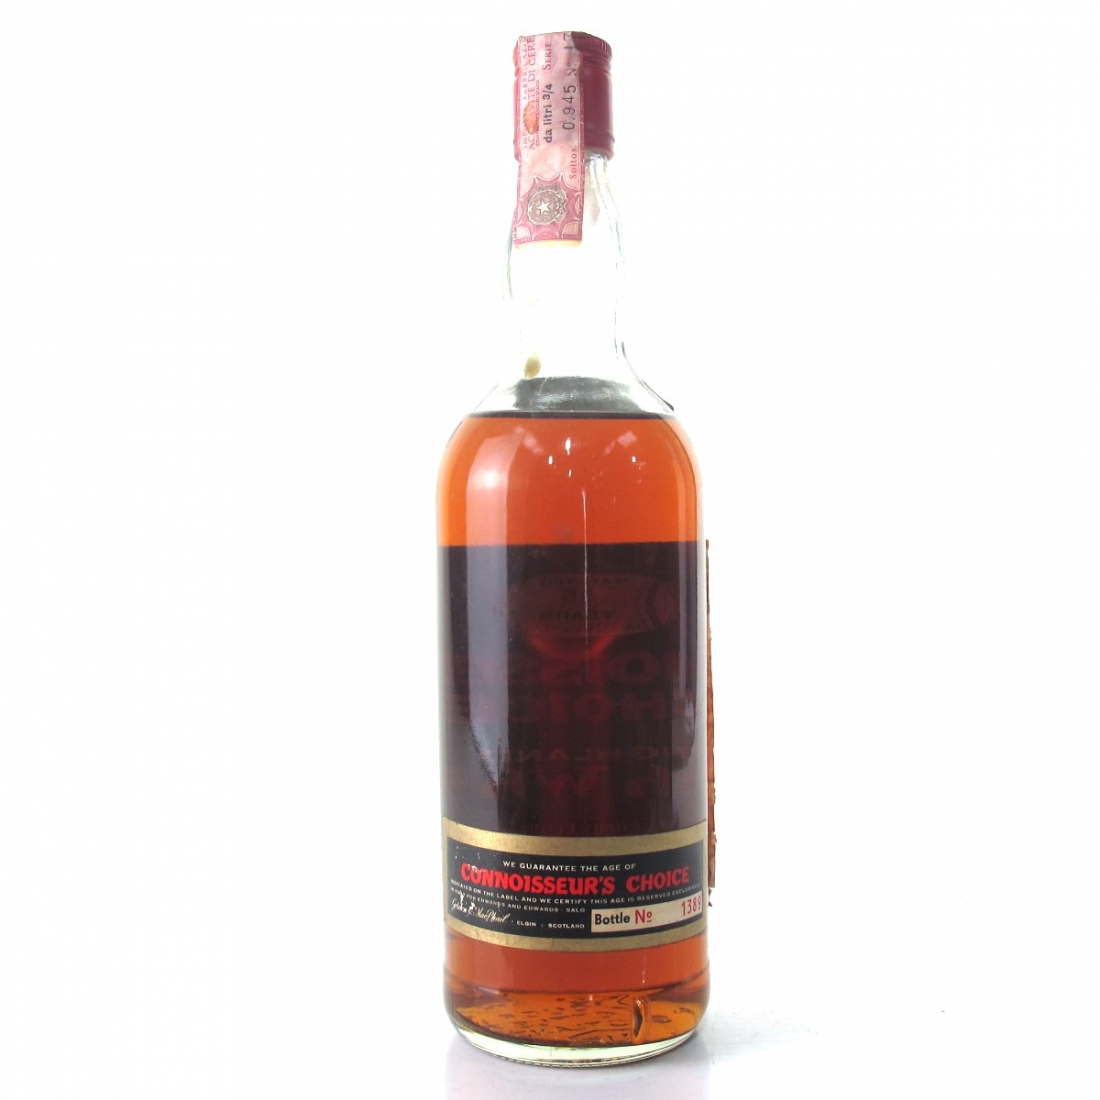 Strathisla 1937 Gordon and MacPhail 35 Year Old / Pinerolo Import